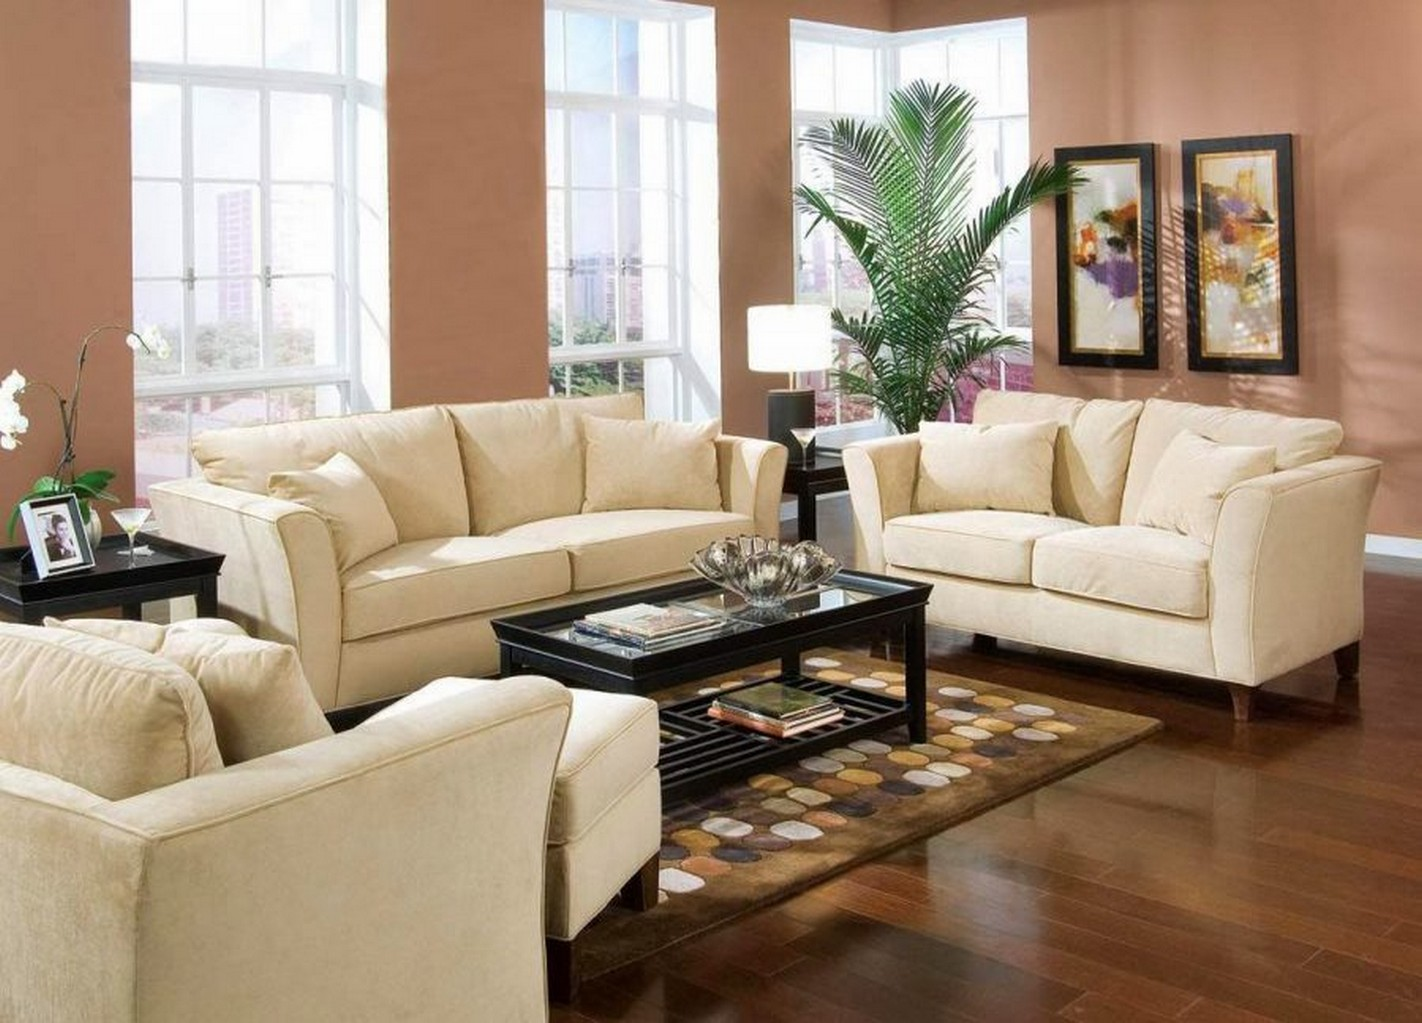 Small living room furniture ideas felish home project Sofas for small living rooms